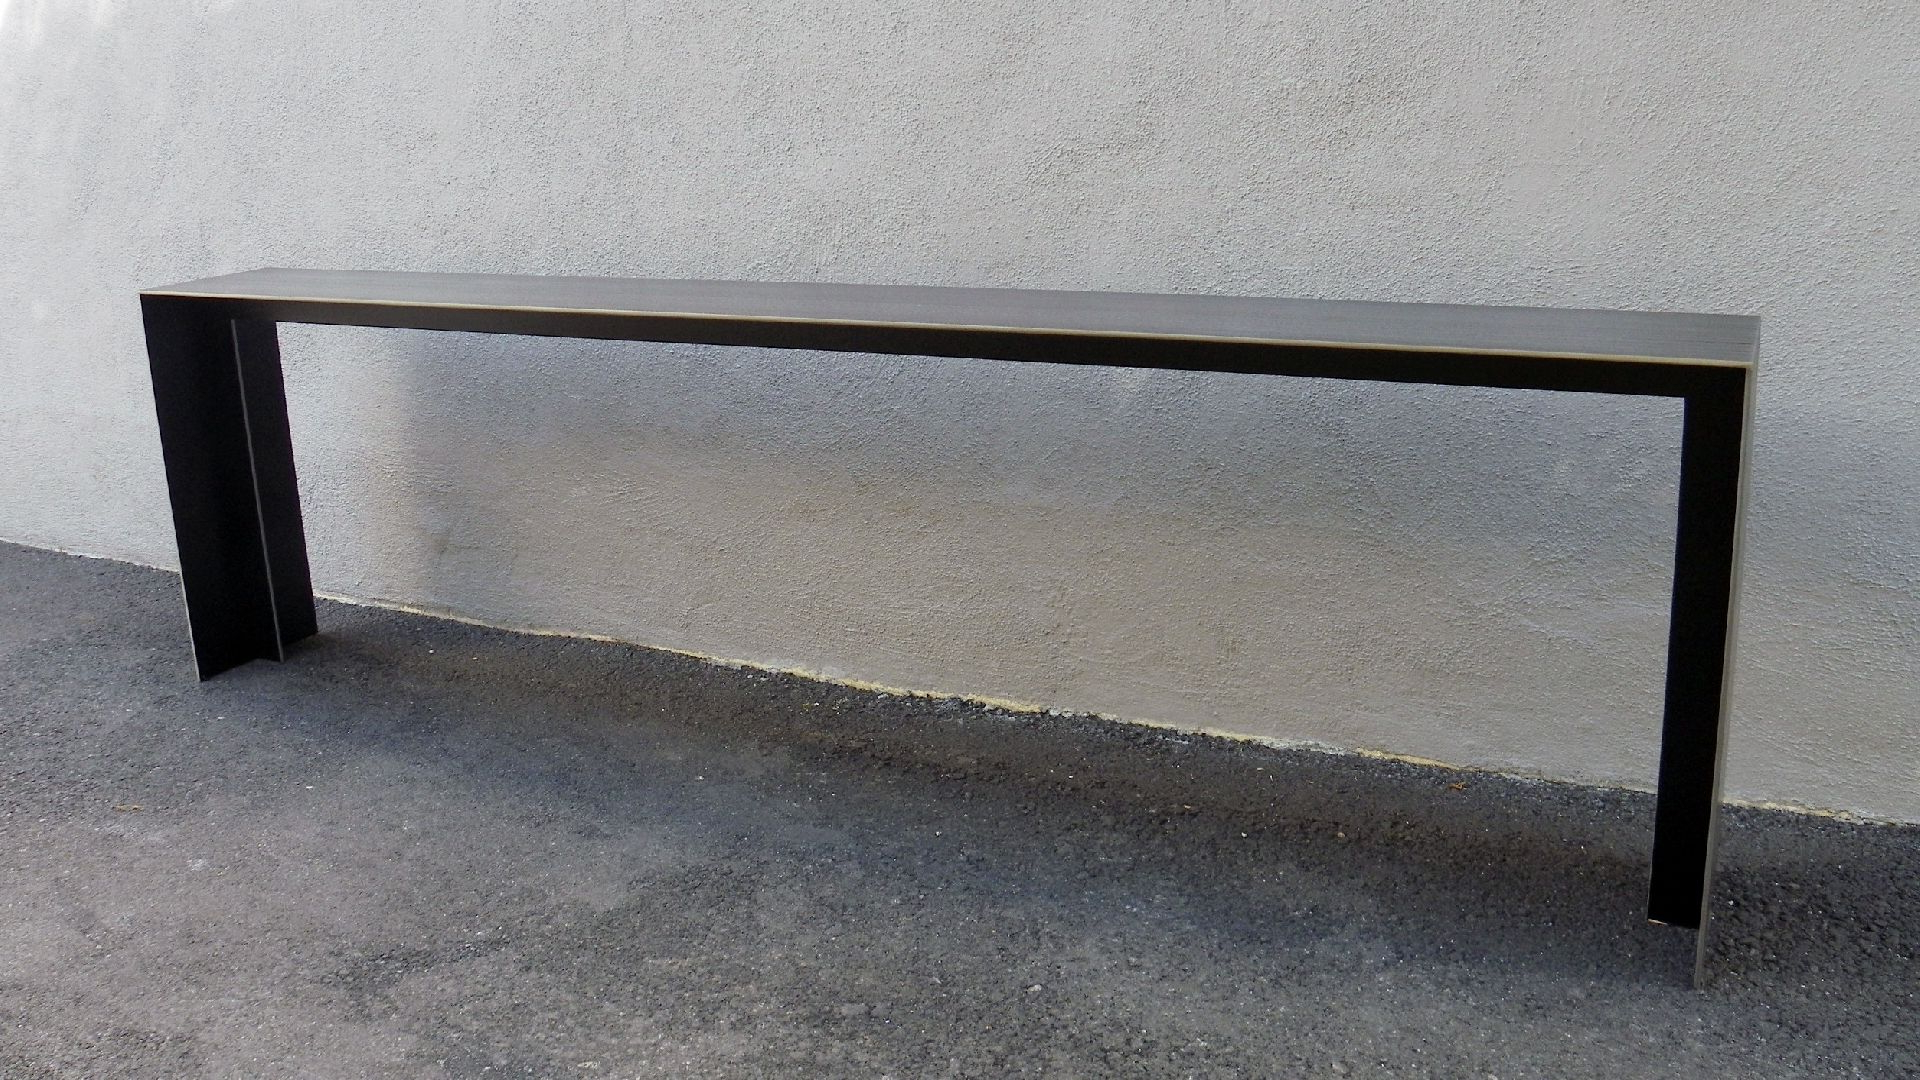 Steel Plate Console With Herringbone Patina | Rl3 | Pinterest Pertaining To Parsons White Marble Top & Dark Steel Base 48X16 Console Tables (Gallery 17 of 20)